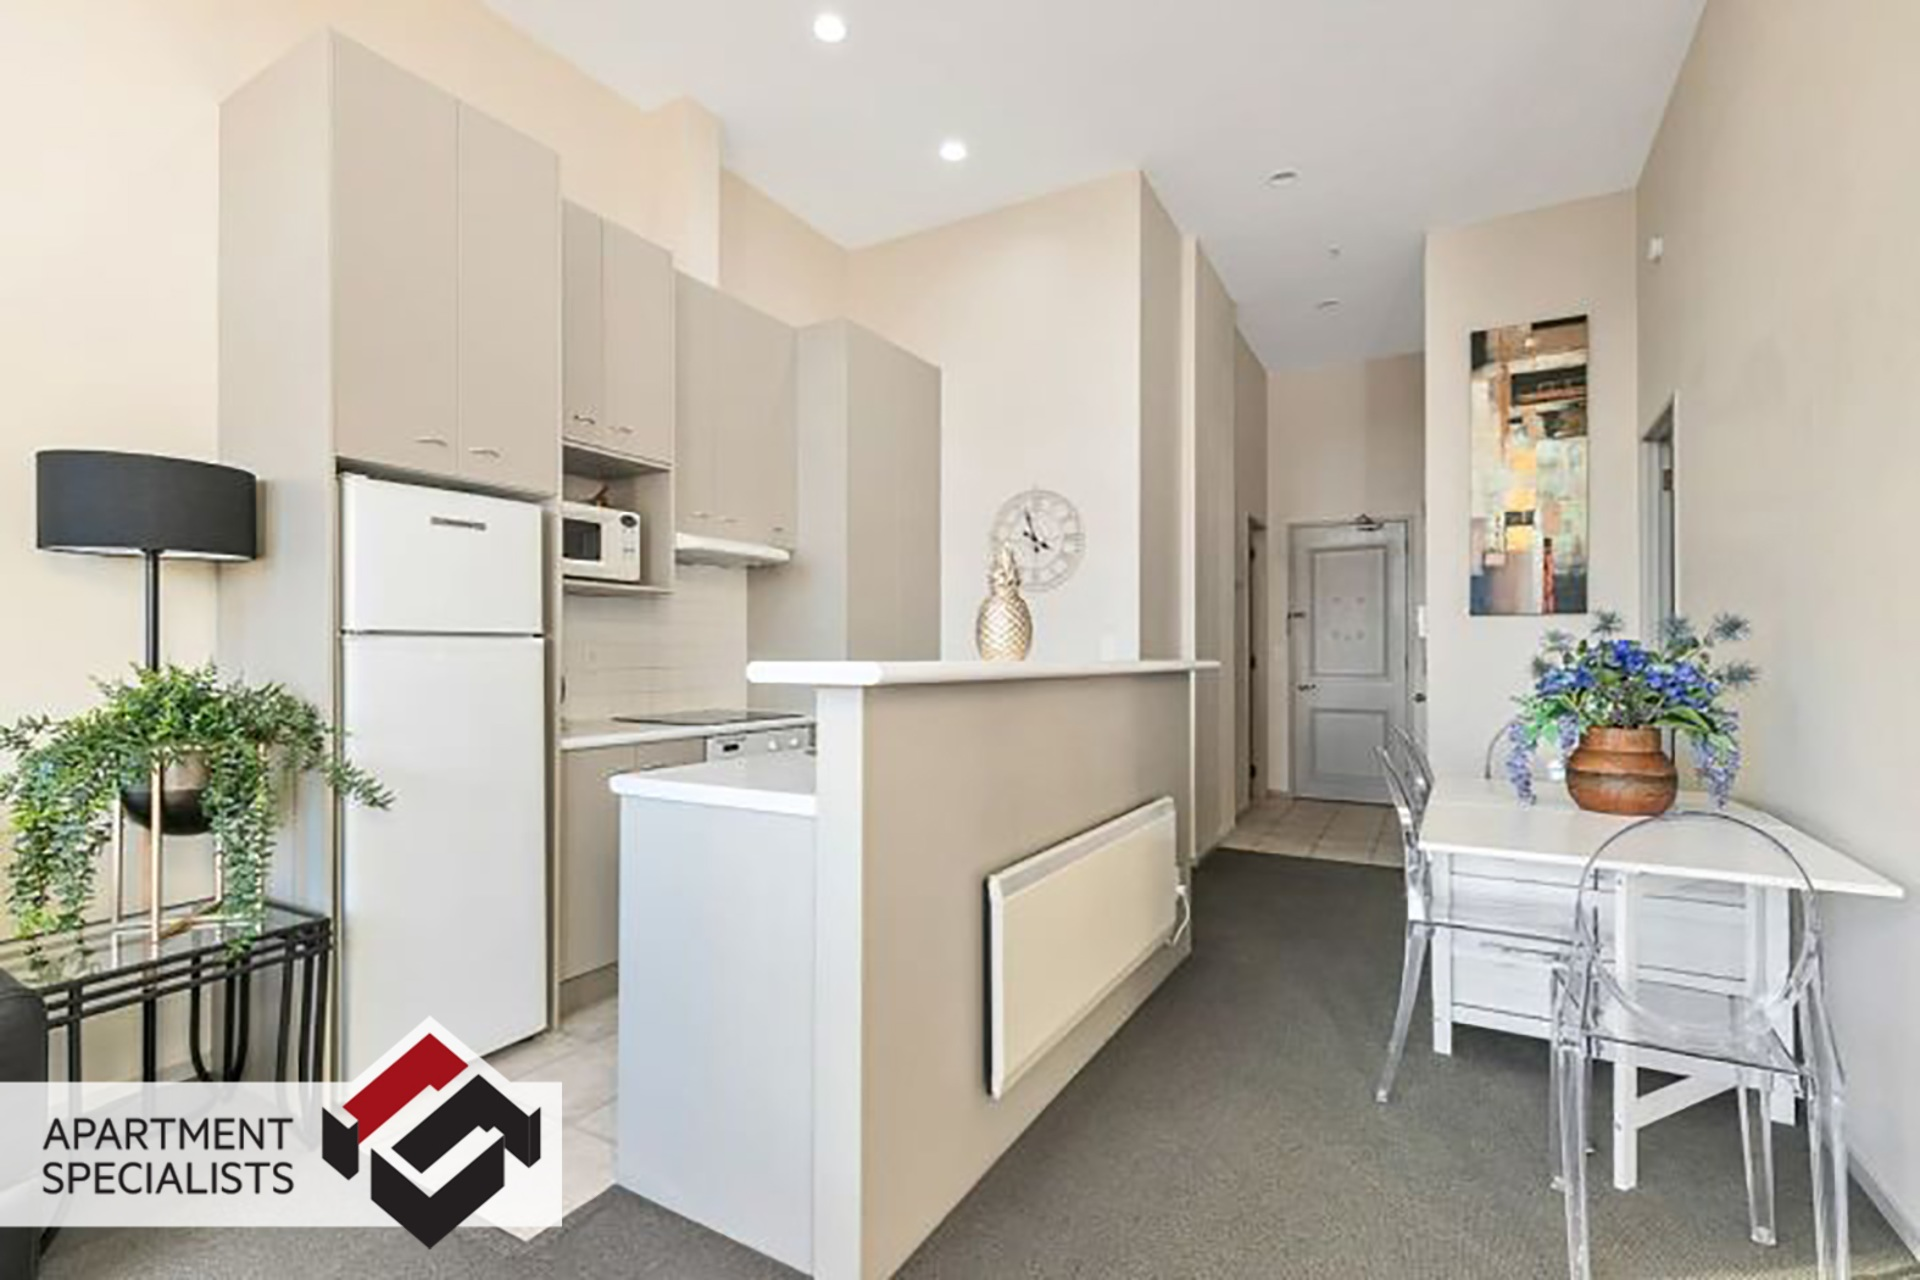 8 | 50 Eden Crescent, City Centre | Apartment Specialists